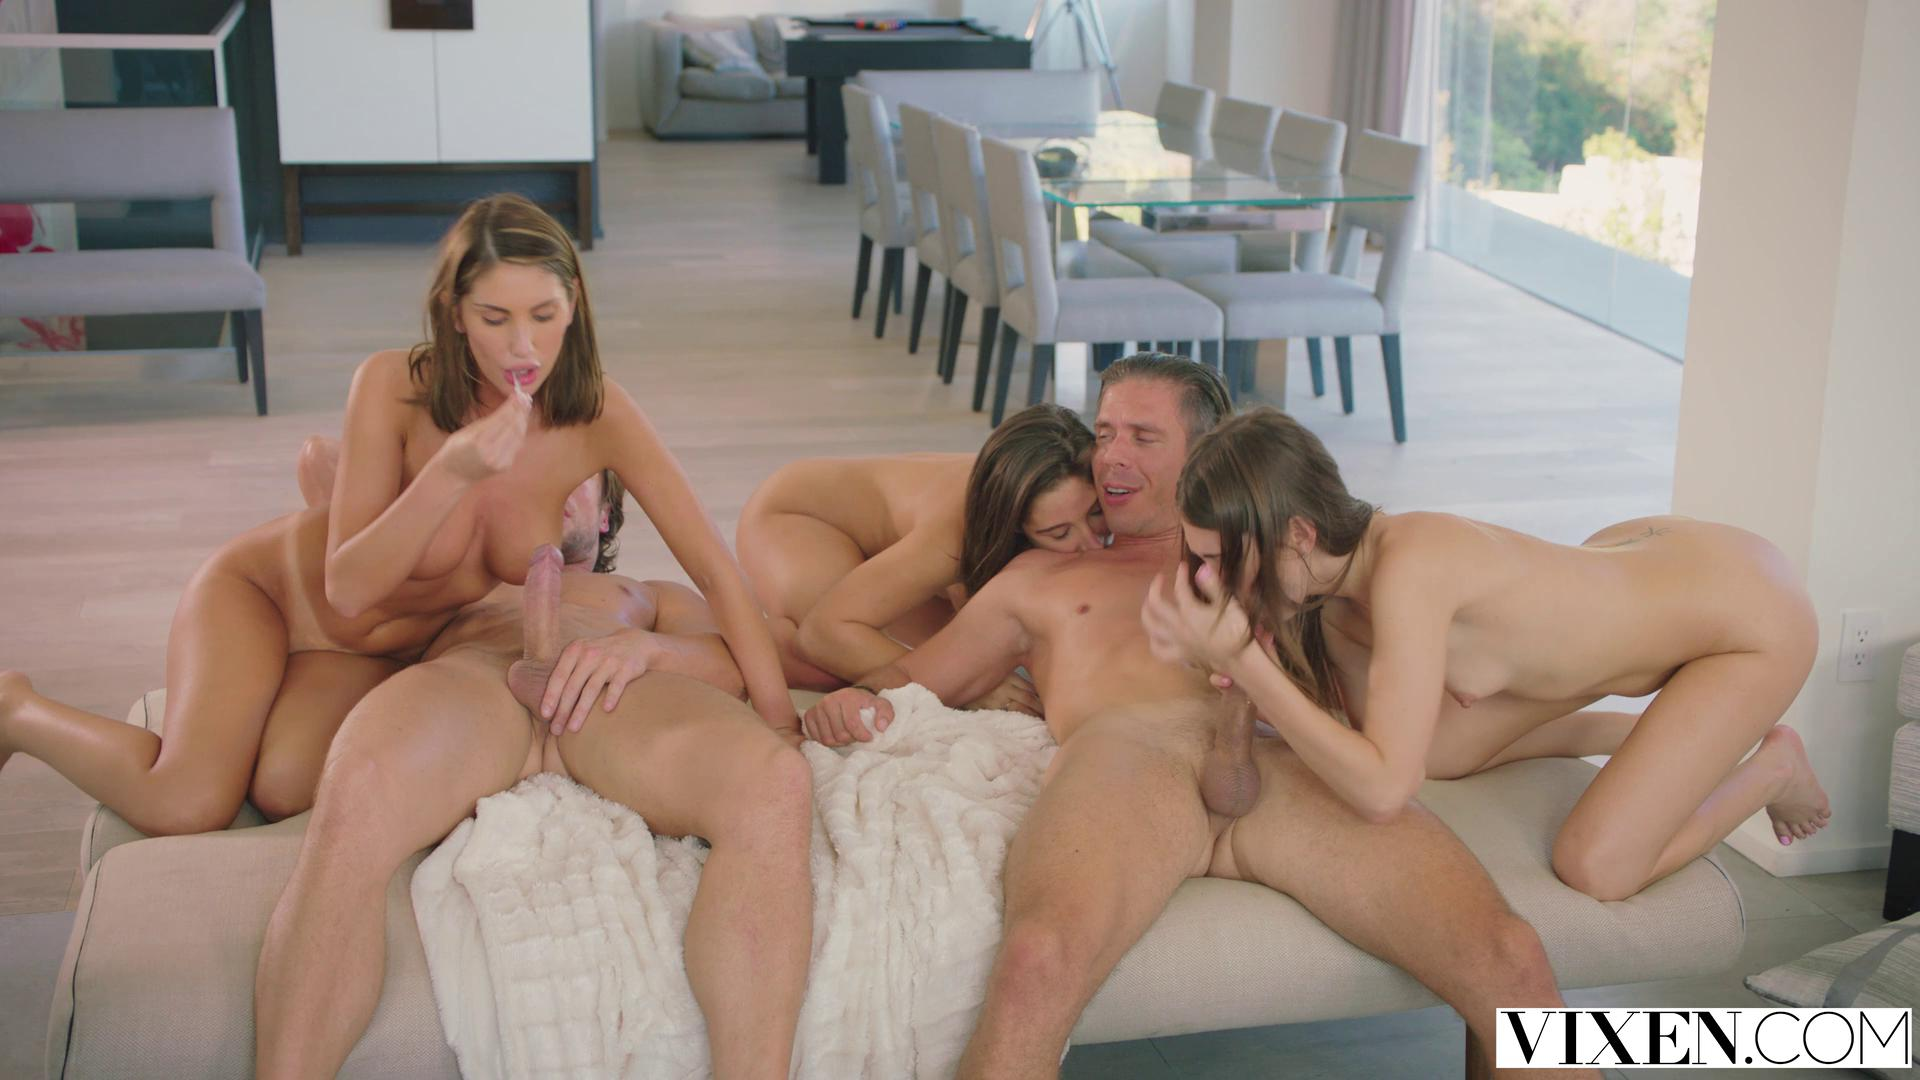 Vixen – Riley Reid August Ames And Abella Danger